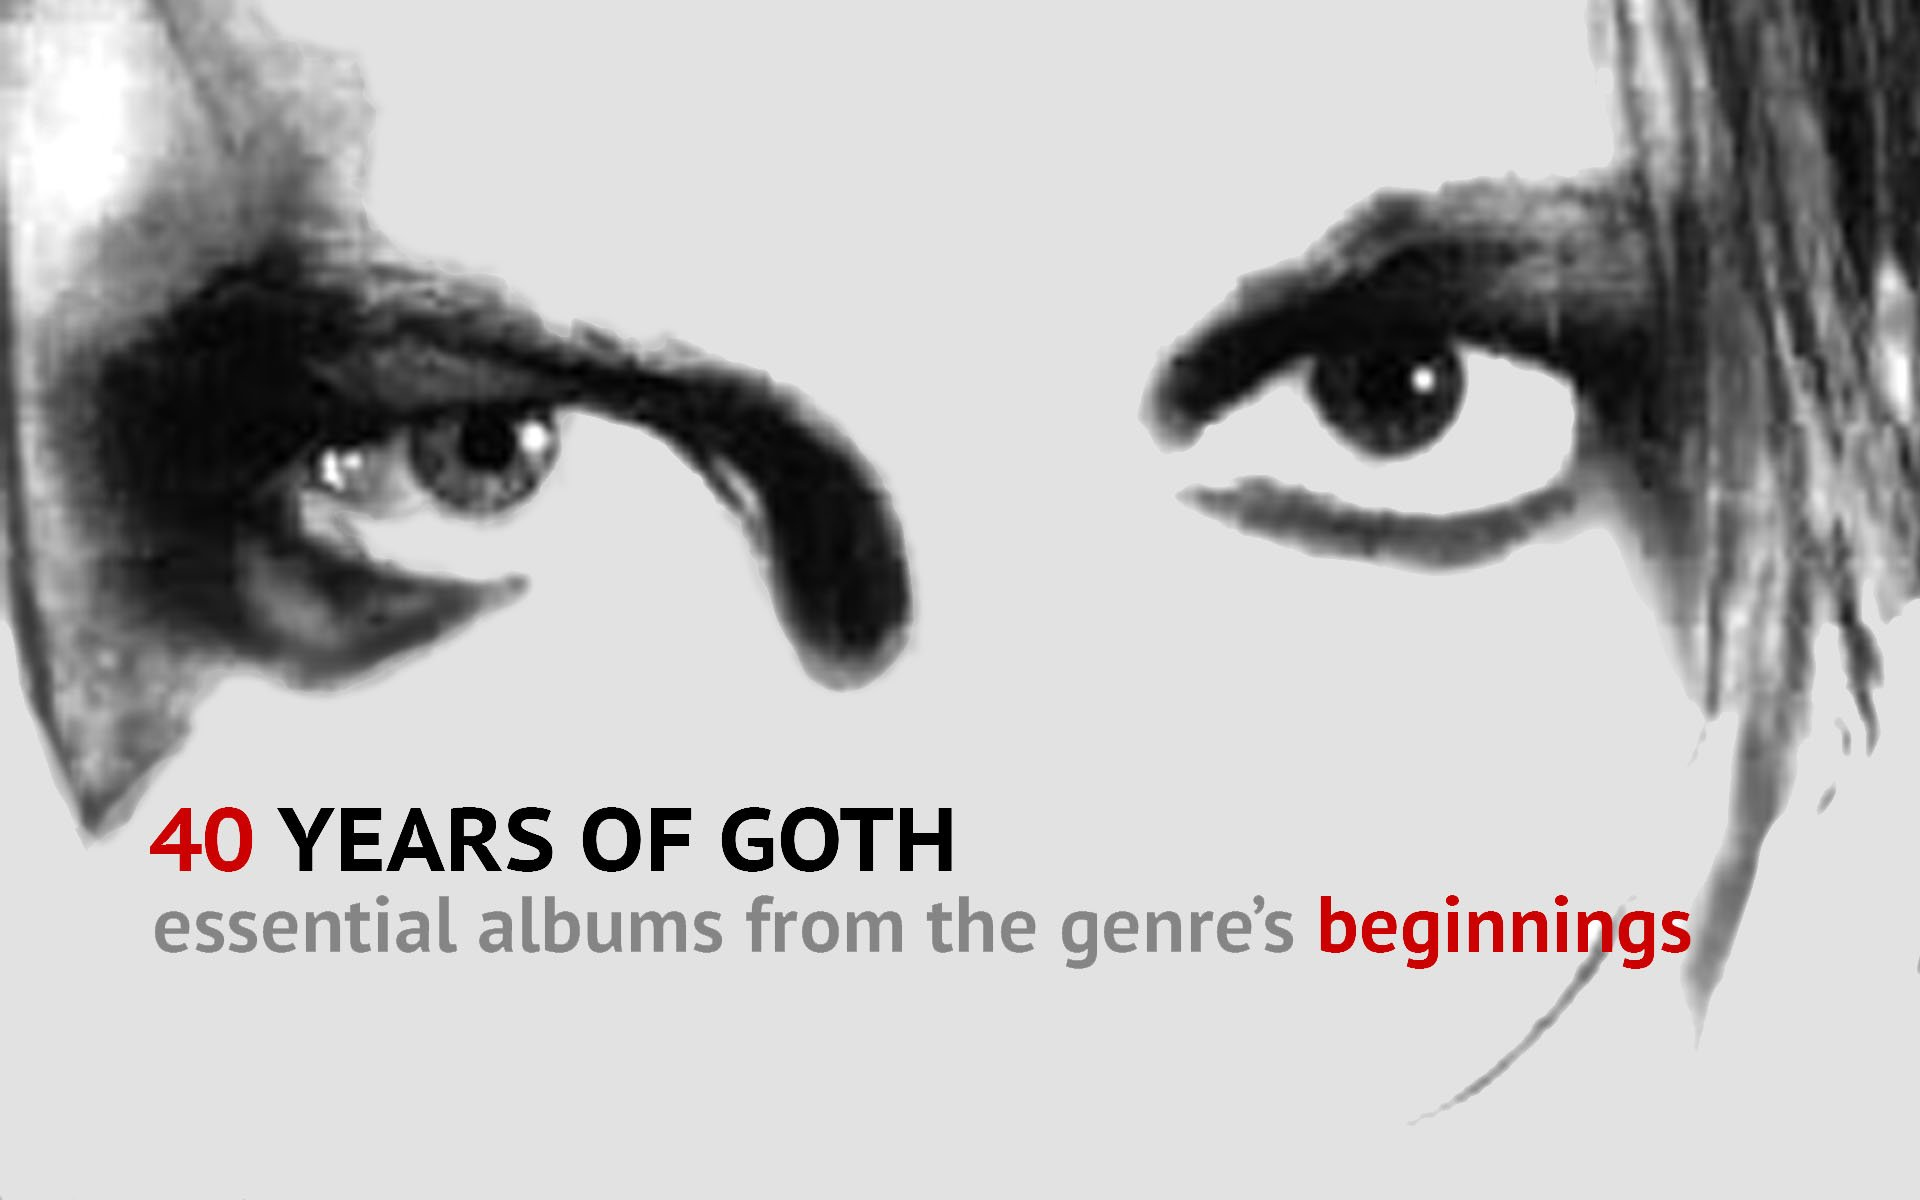 40 Years of Goth: Essential Albums from the Genre's Beginnings